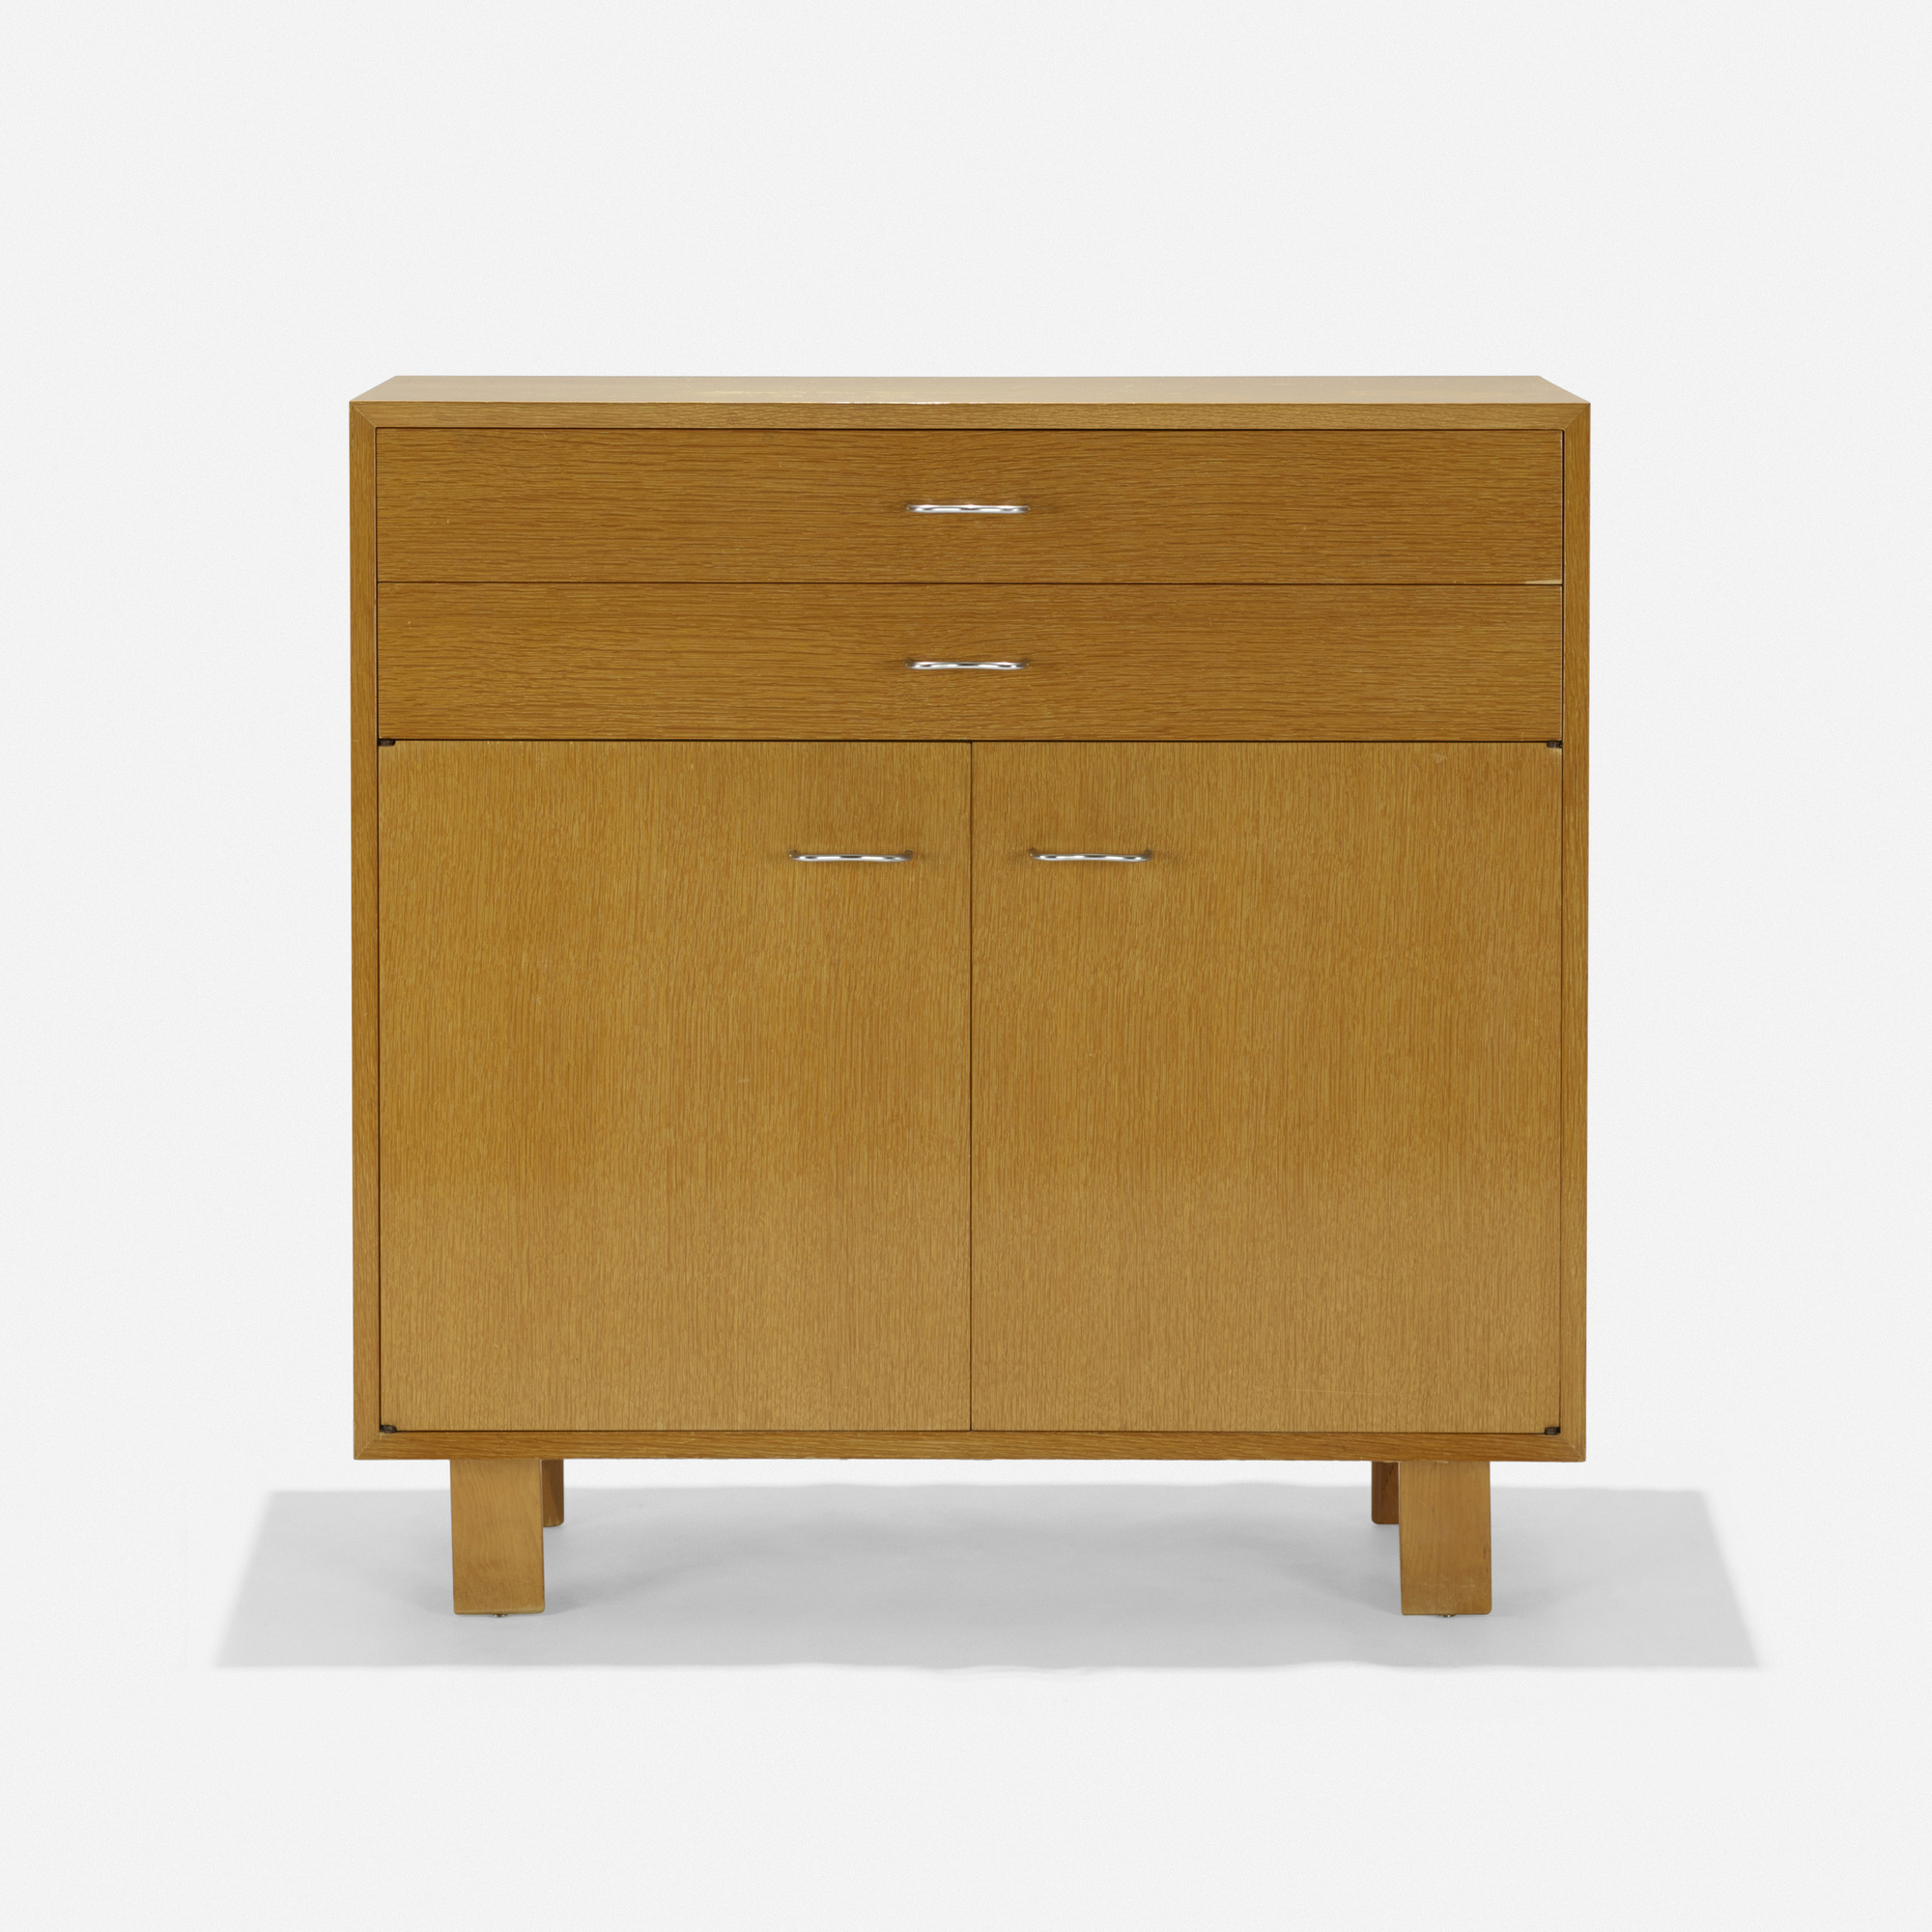 233: George Nelson & Associates / cabinet, model 4626 from the Basic Cabinet Series (1 of 3)